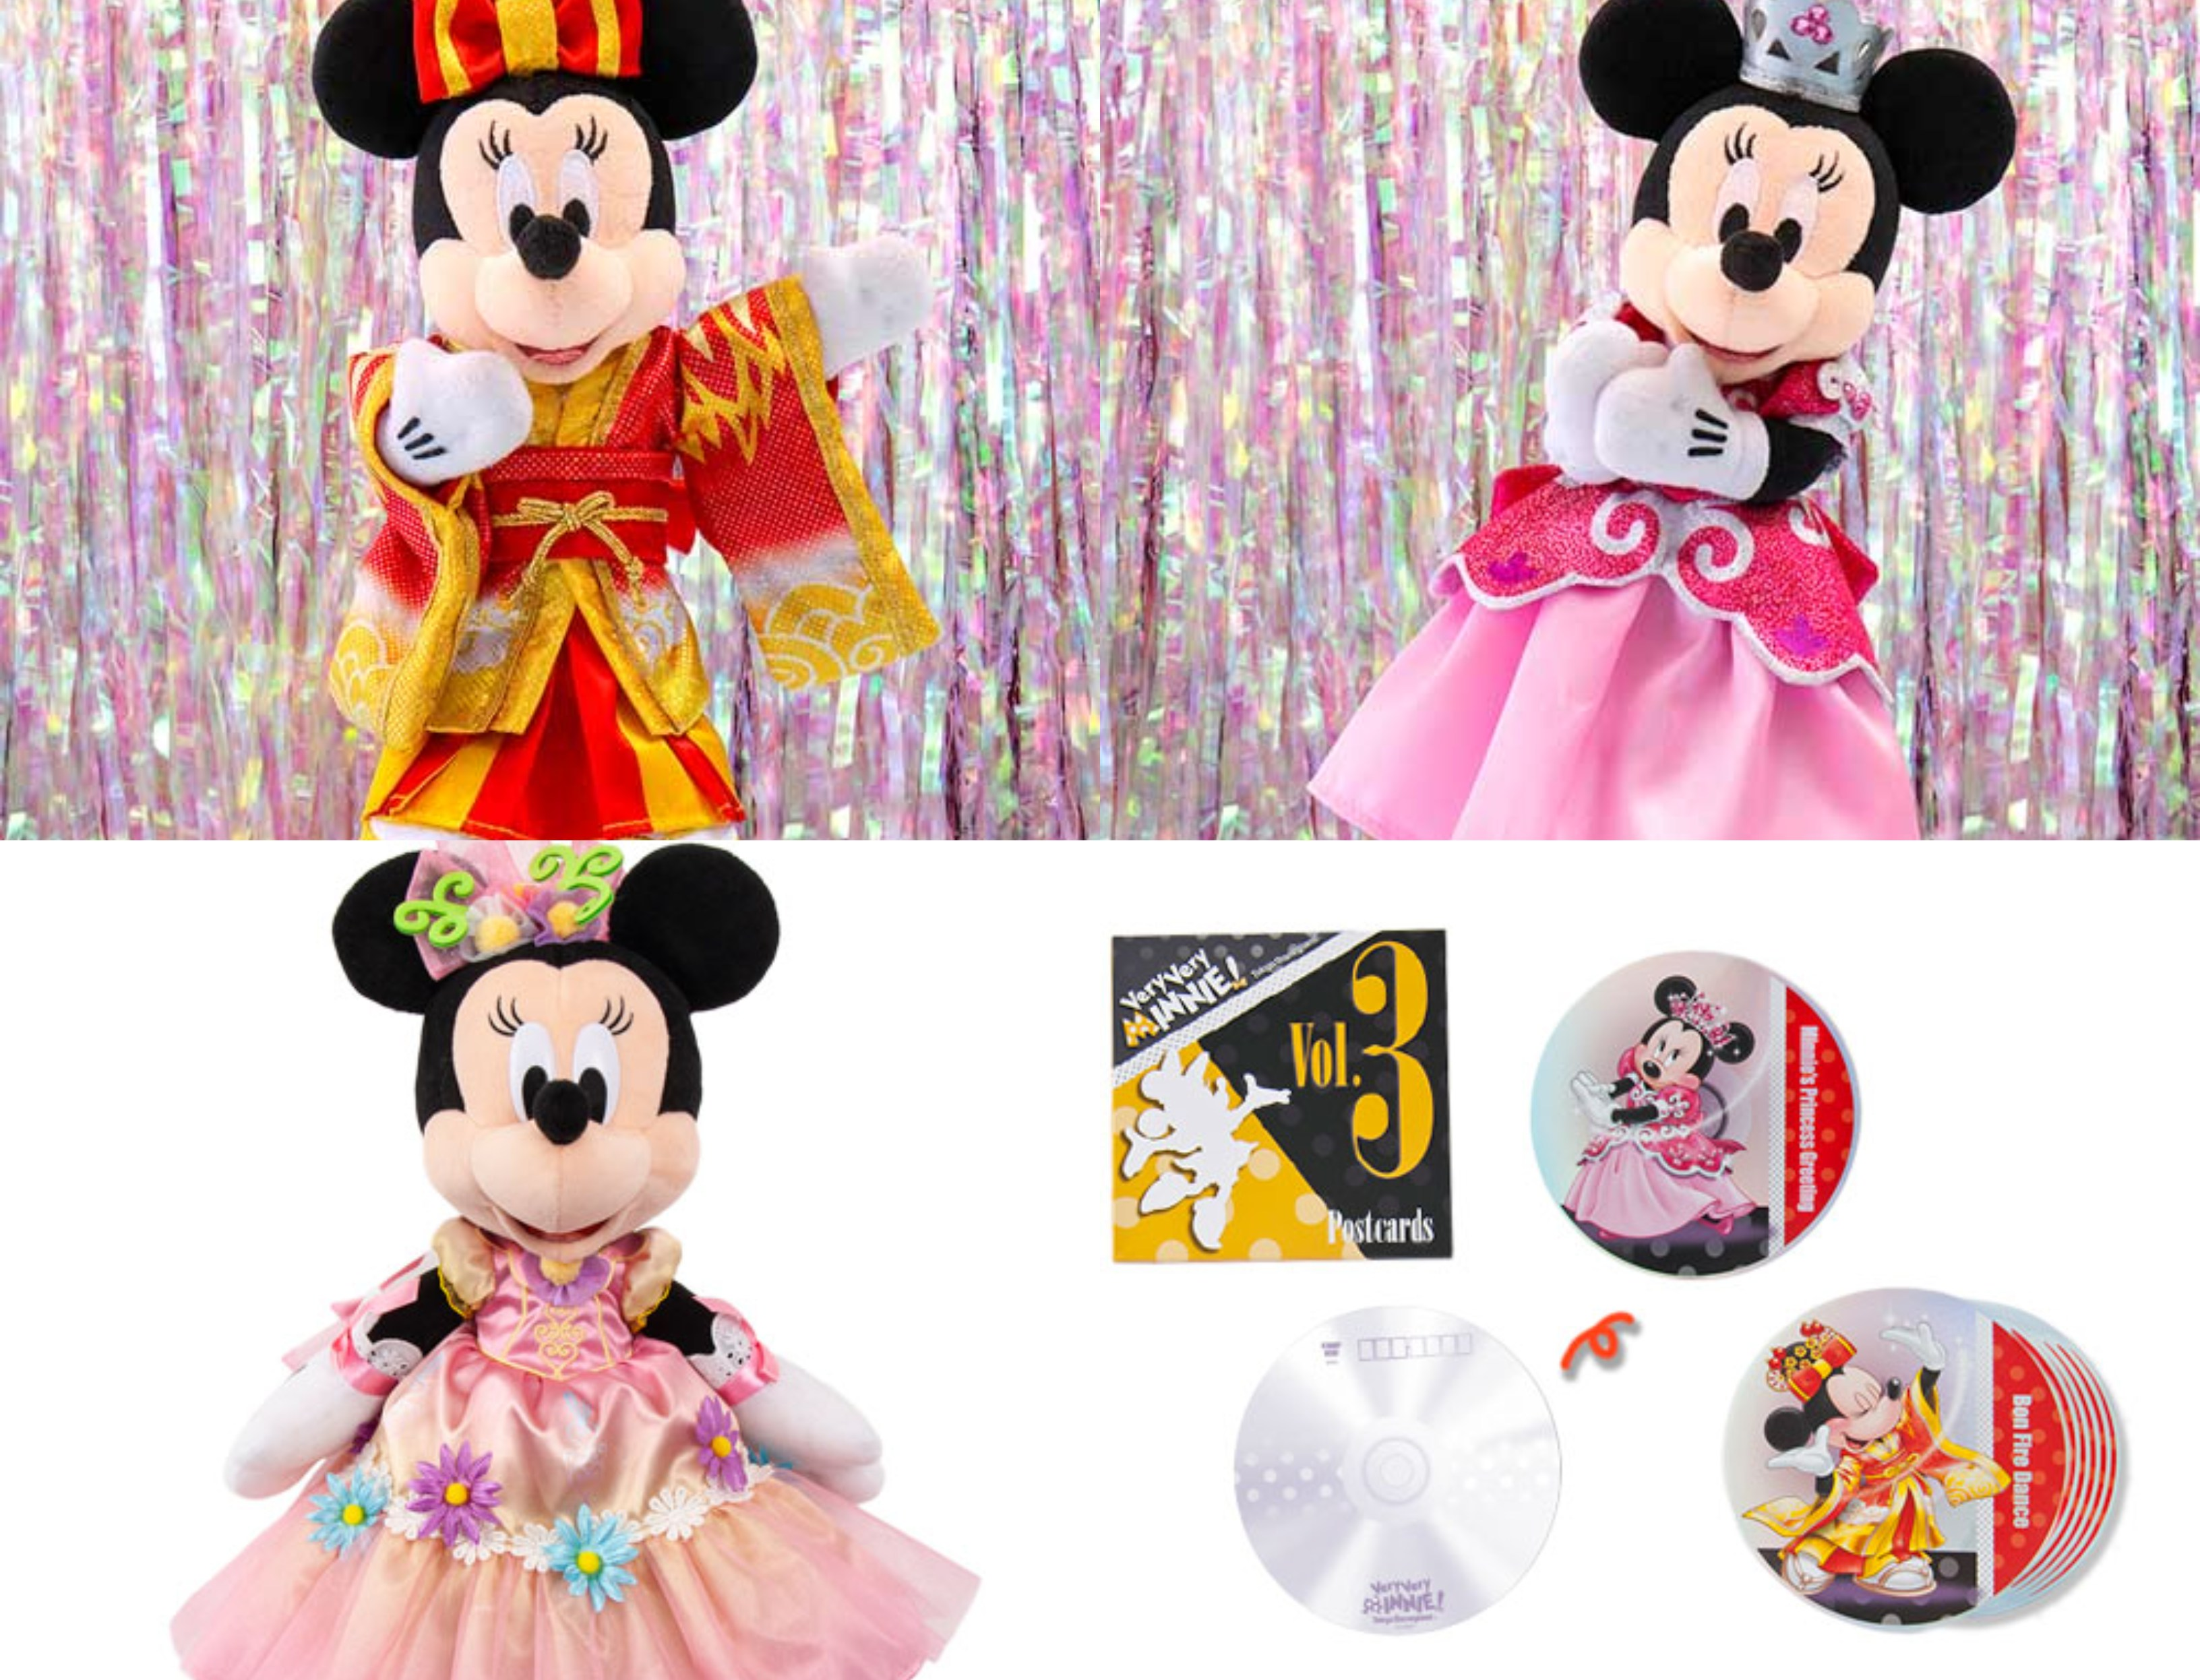 Mickey Mouse Posey Purasshi 35th Tokyo Disney Resort Limited